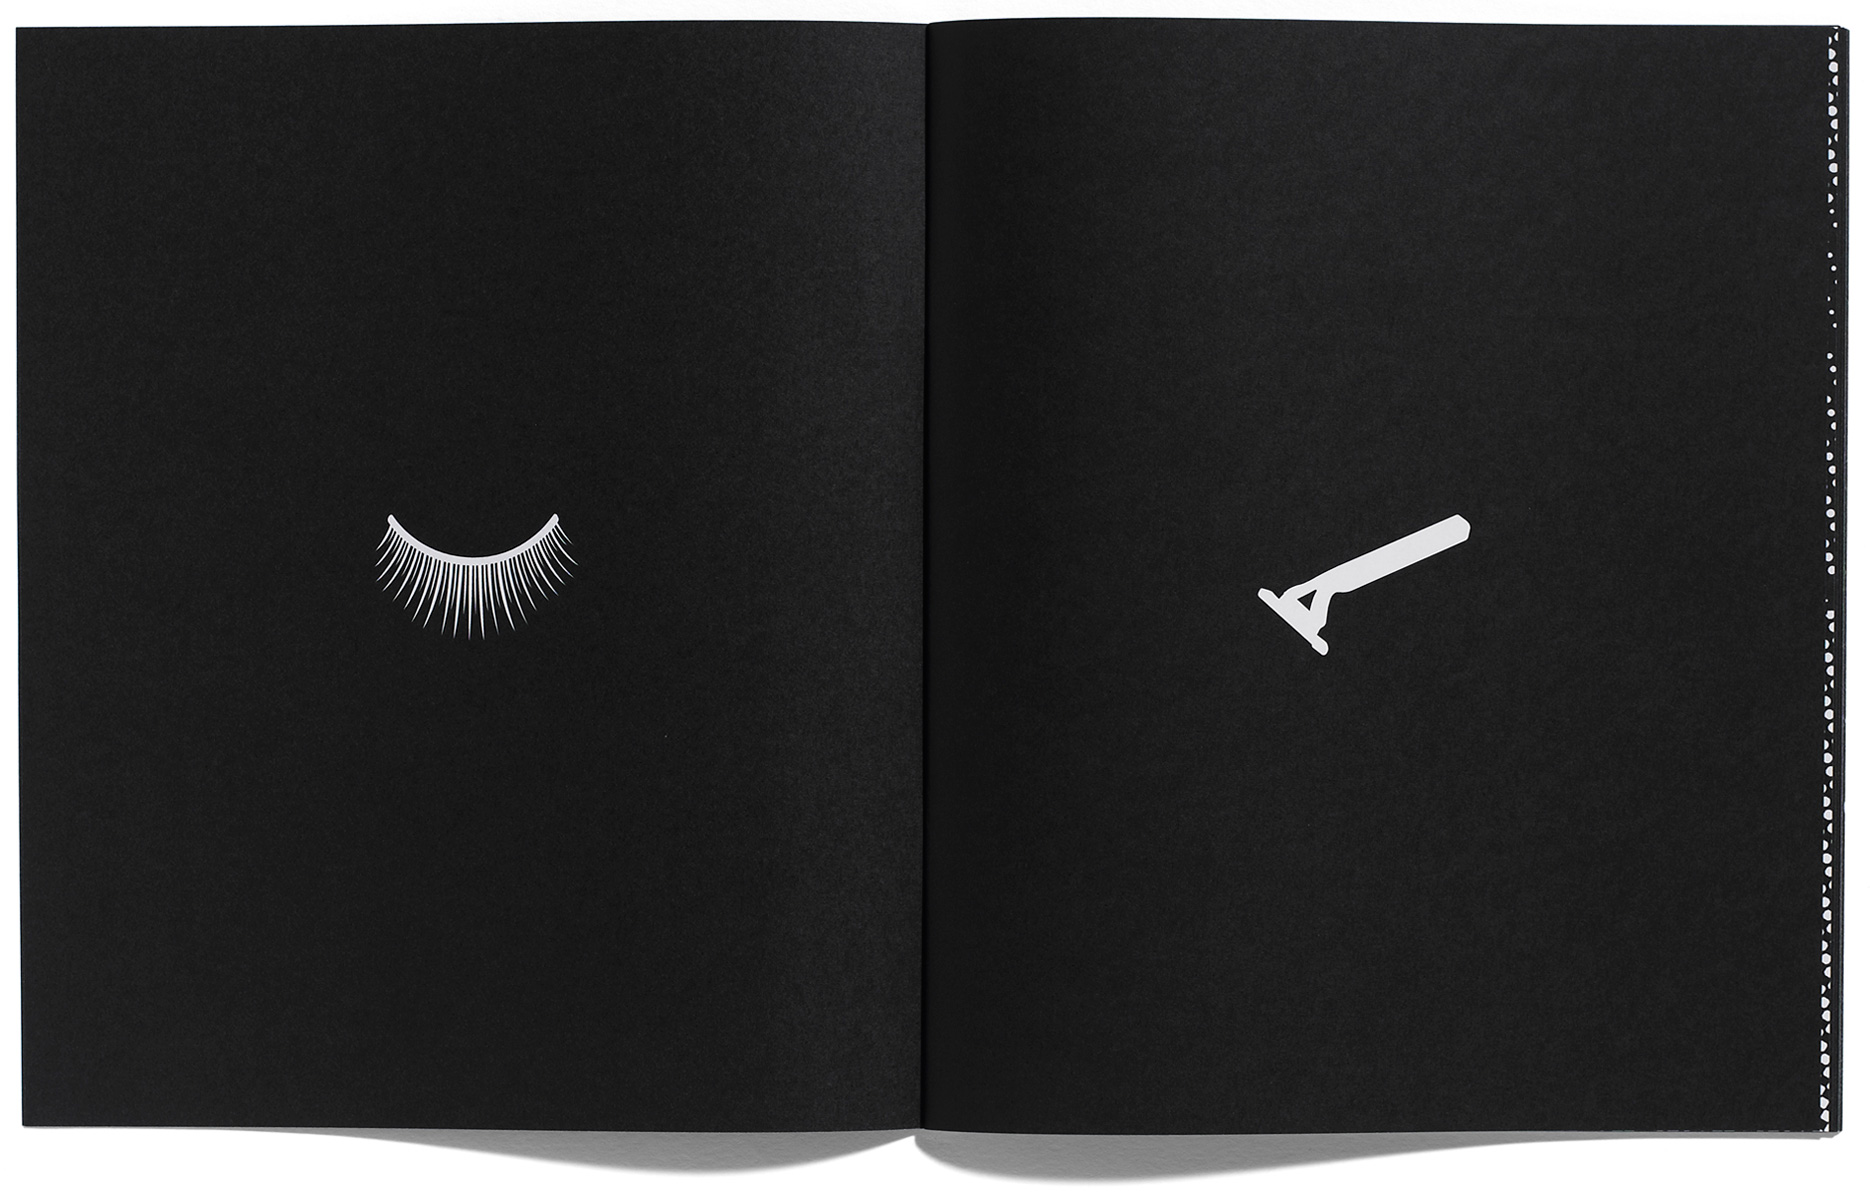 Worldly Cares and Love Affairs, Jonathan Ellery, published by Browns Editions, designed by Browns Design